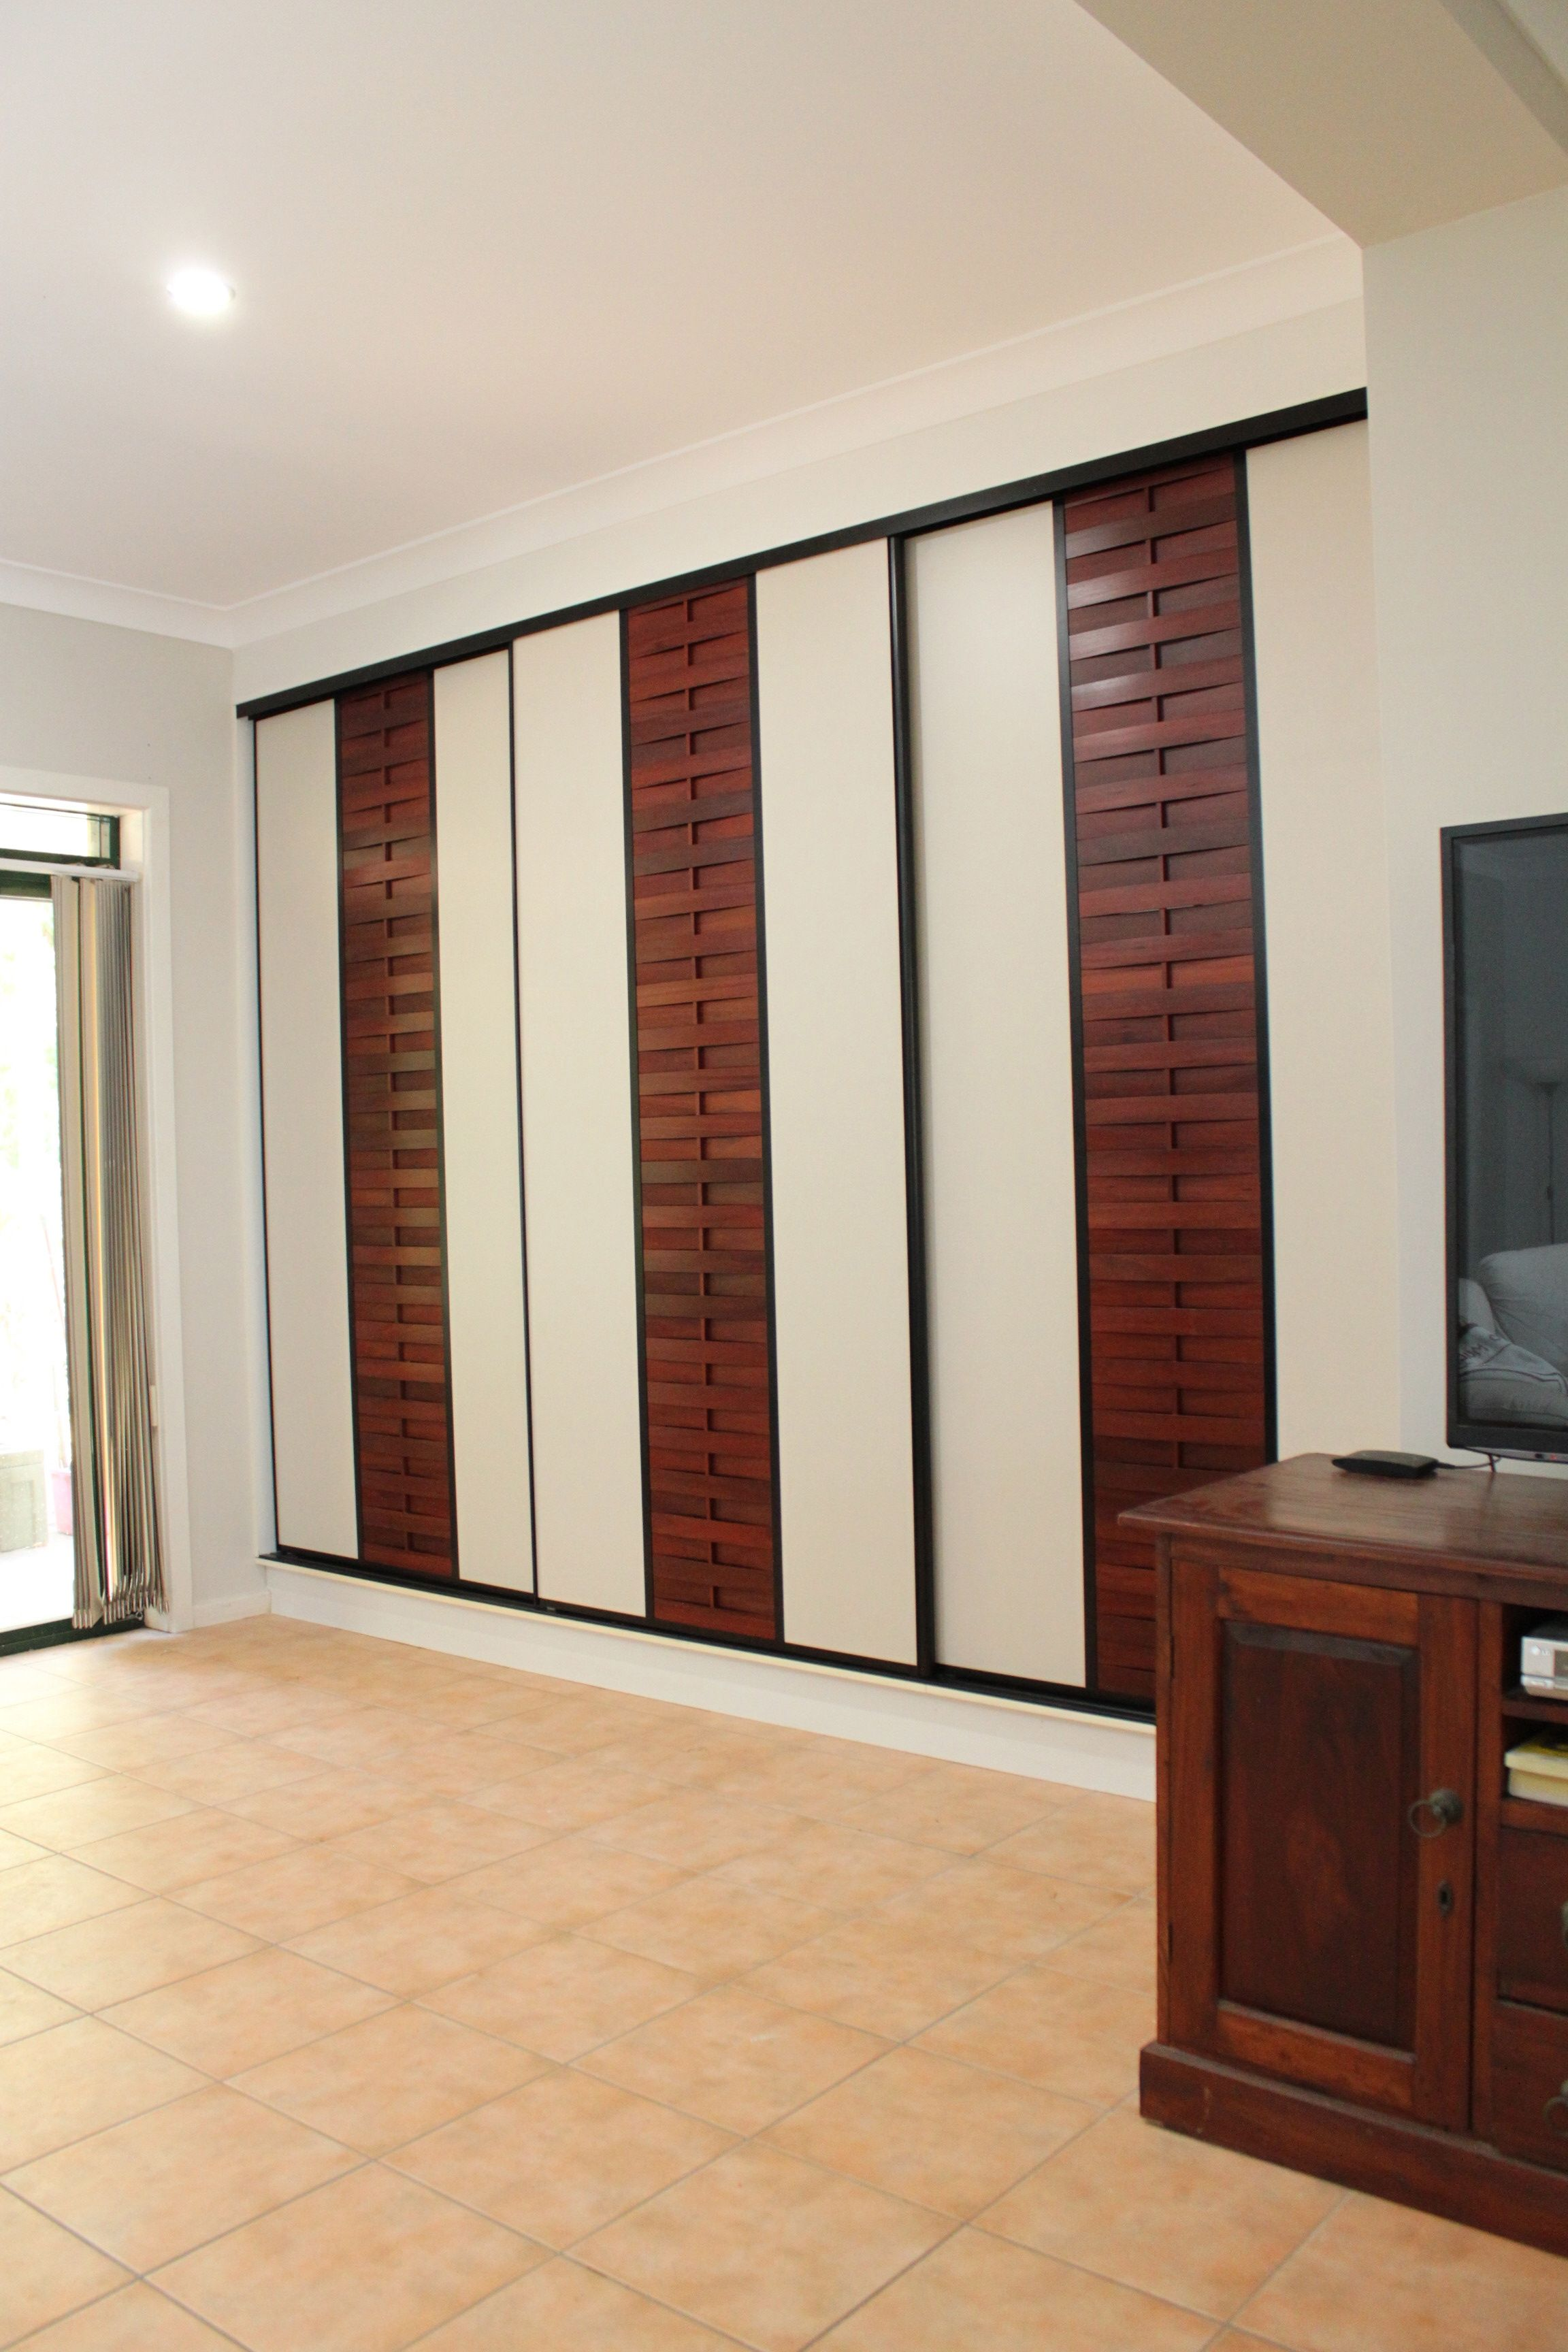 Sukiya Sliding Doors with formica rock salt panel and jarrah slats. .formfunctionnt. & Sukiya Sliding Doors with formica rock salt panel and jarrah slats ...